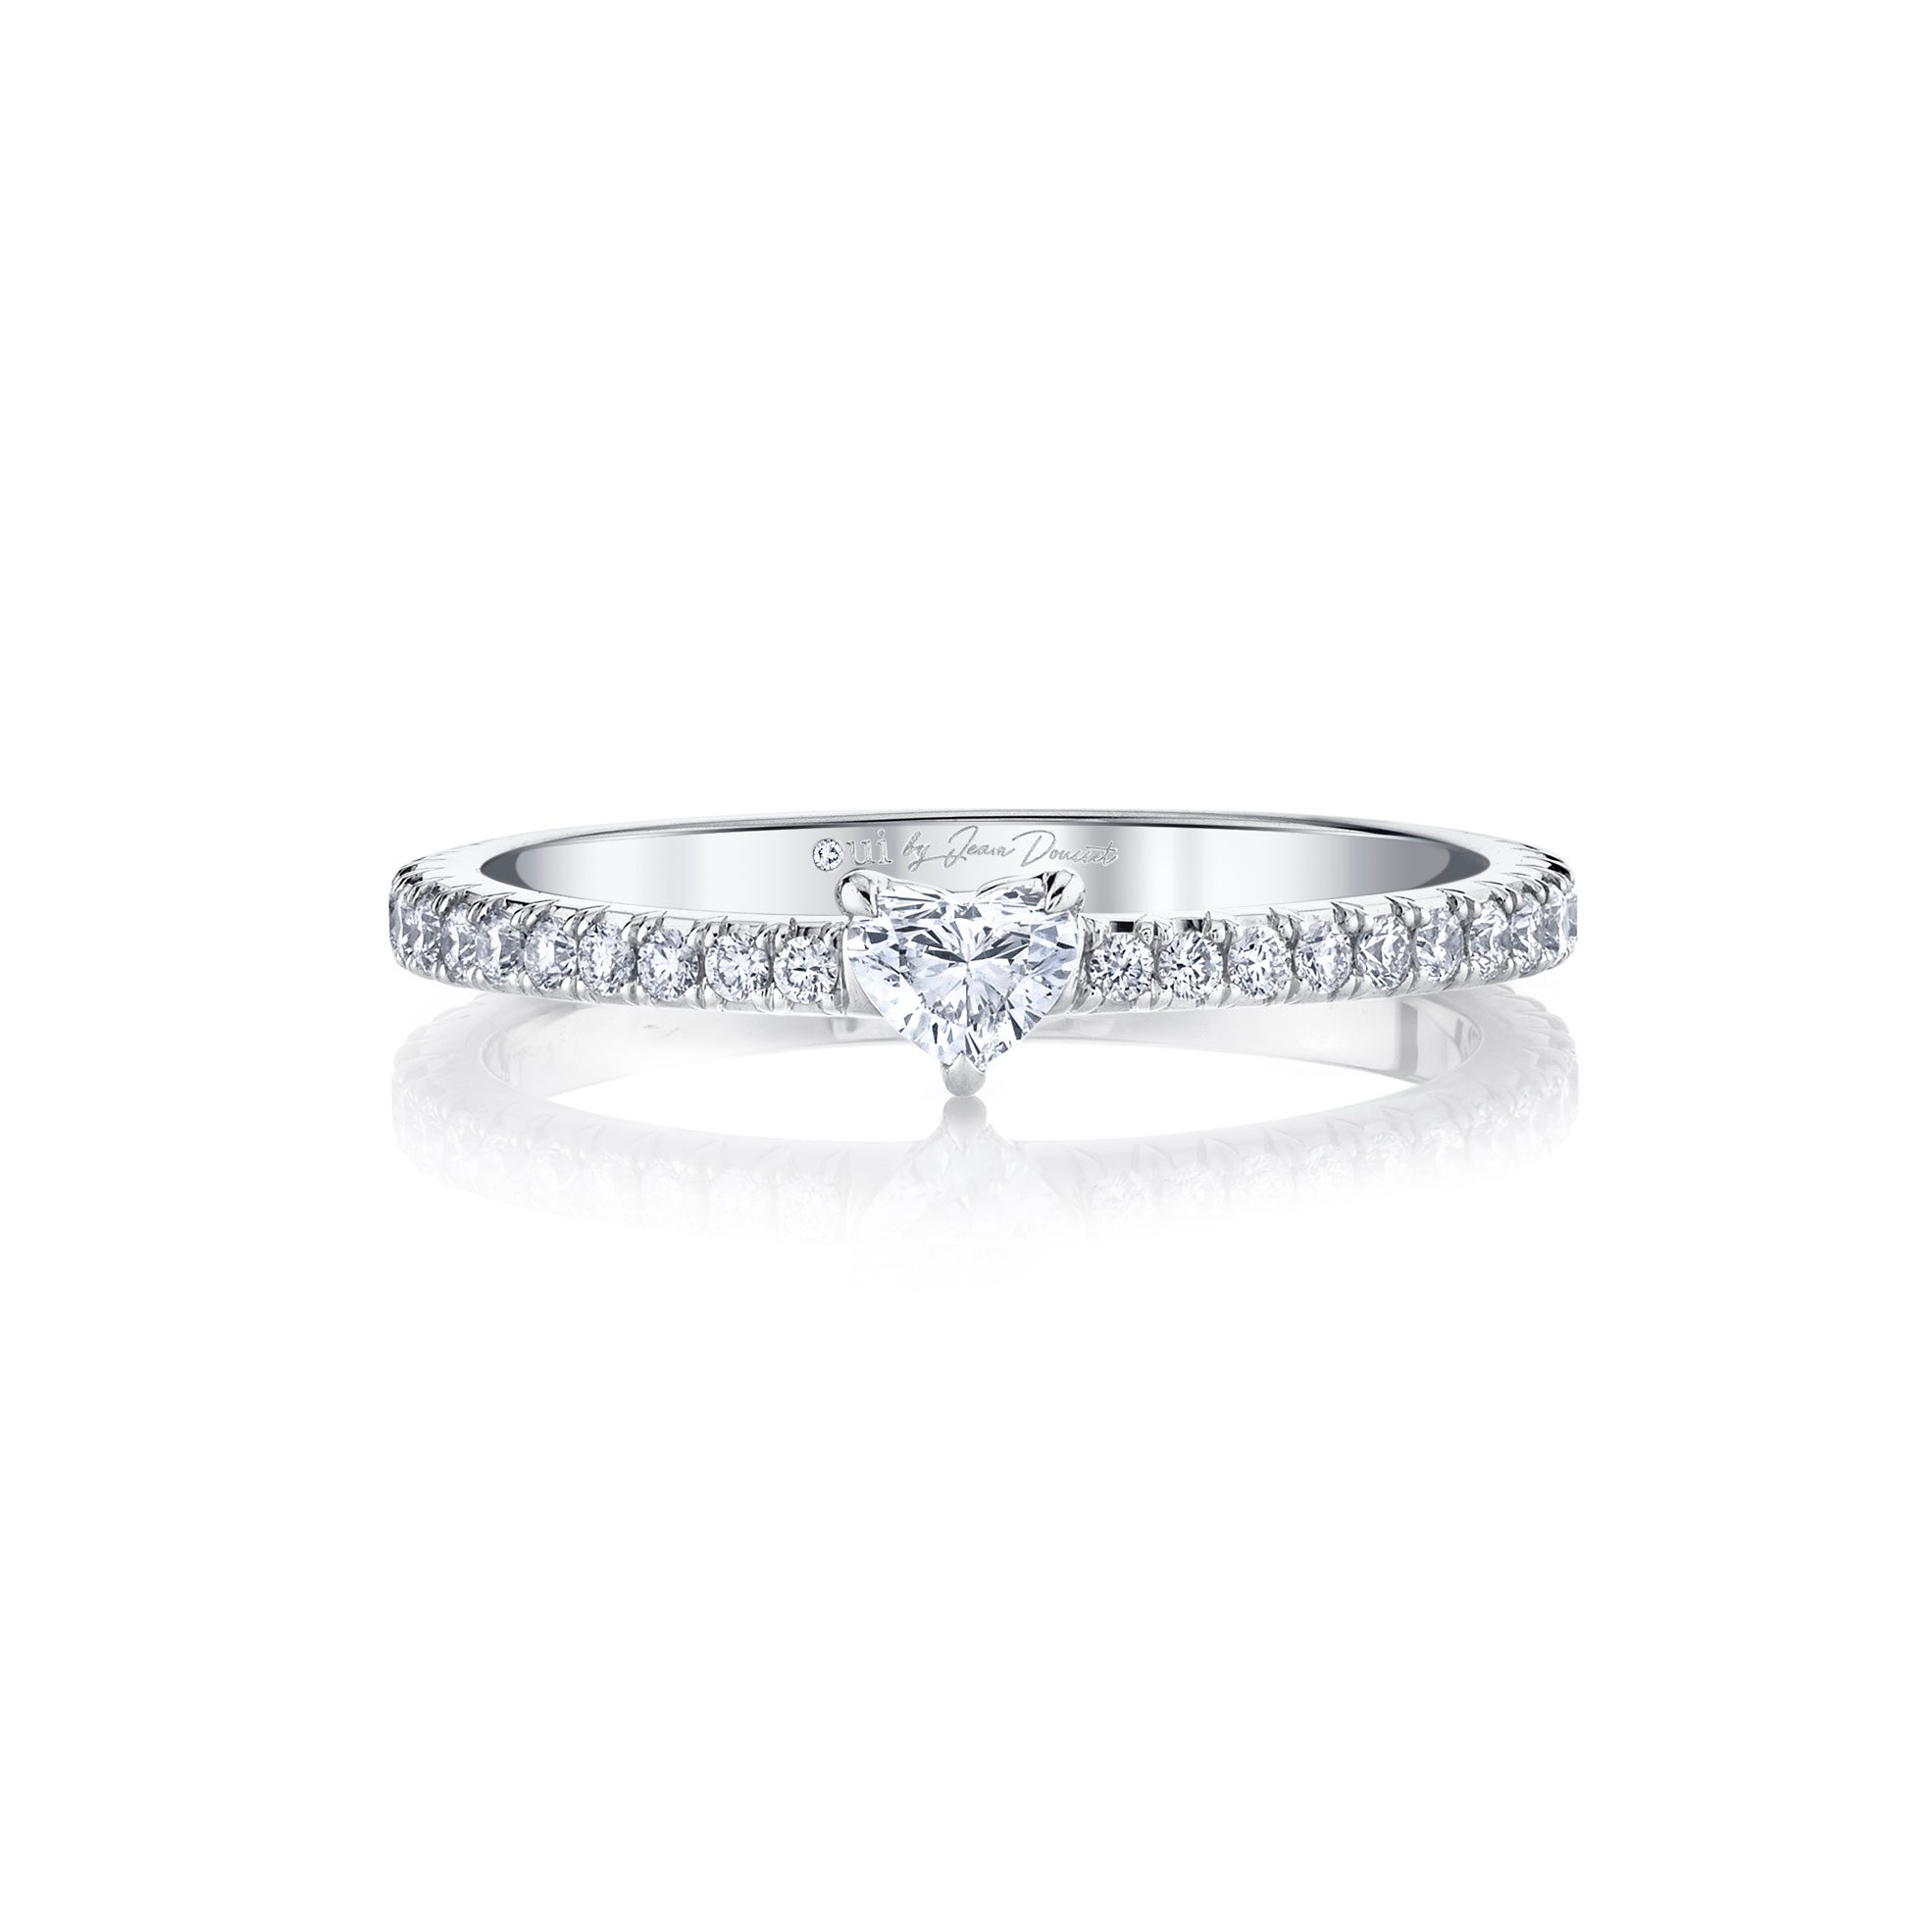 La Petite Heart Diamond Wedding Band with french pavé in 18k White Gold Front View by Oui by Jean Dousset